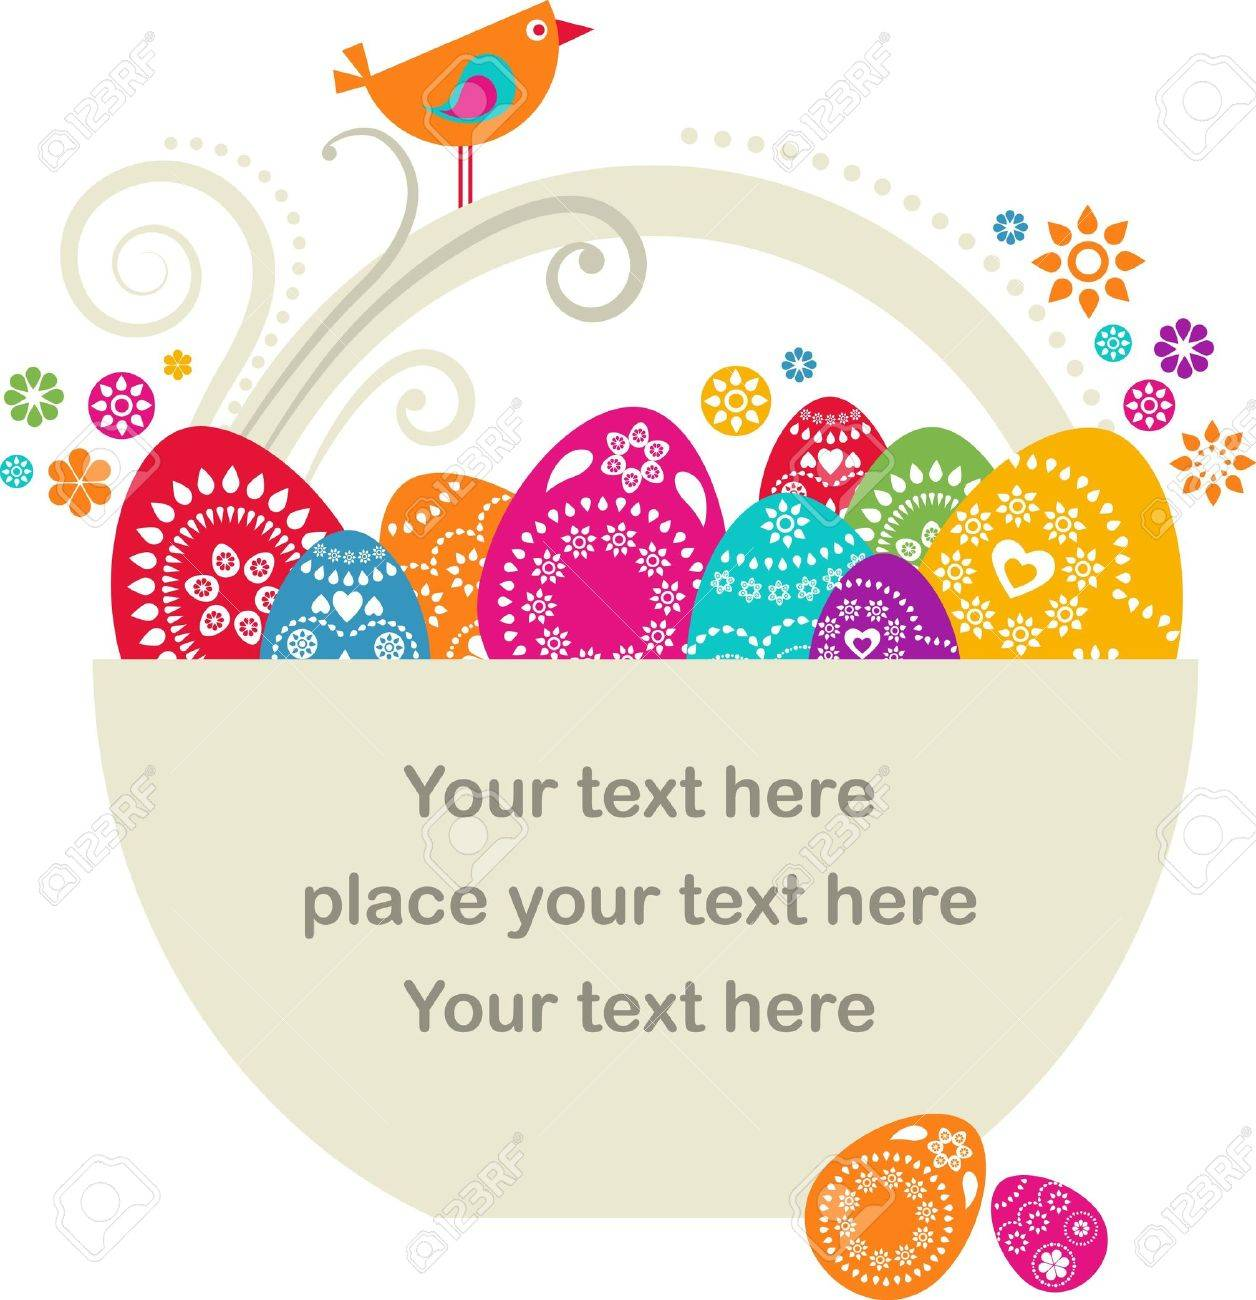 Easter Card Template Basket With Colored Eggs And Flowers – Easter Card Template